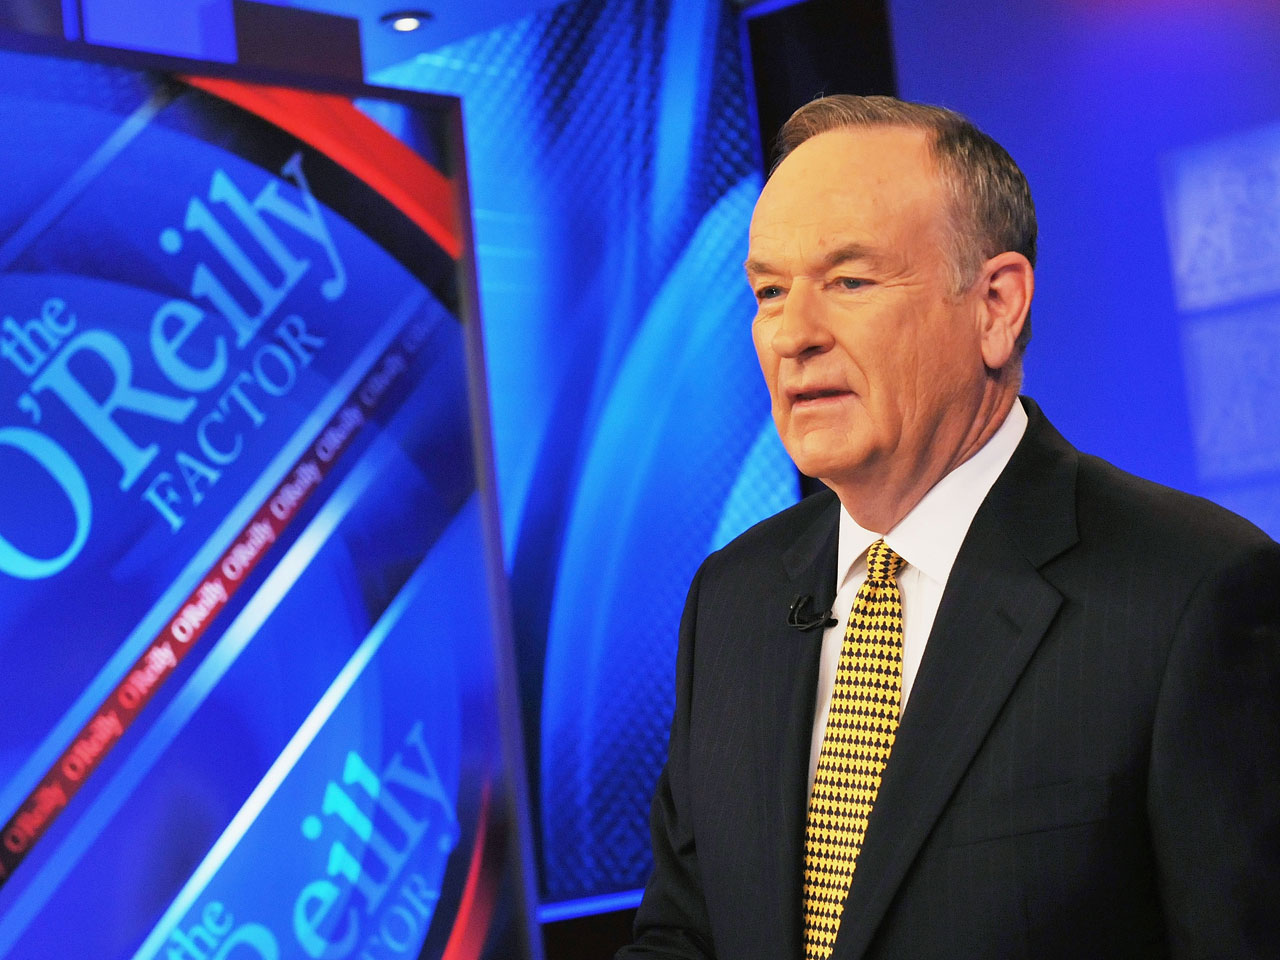 """Bill O'Reilly says firing was """"political hit job"""" and business decision"""